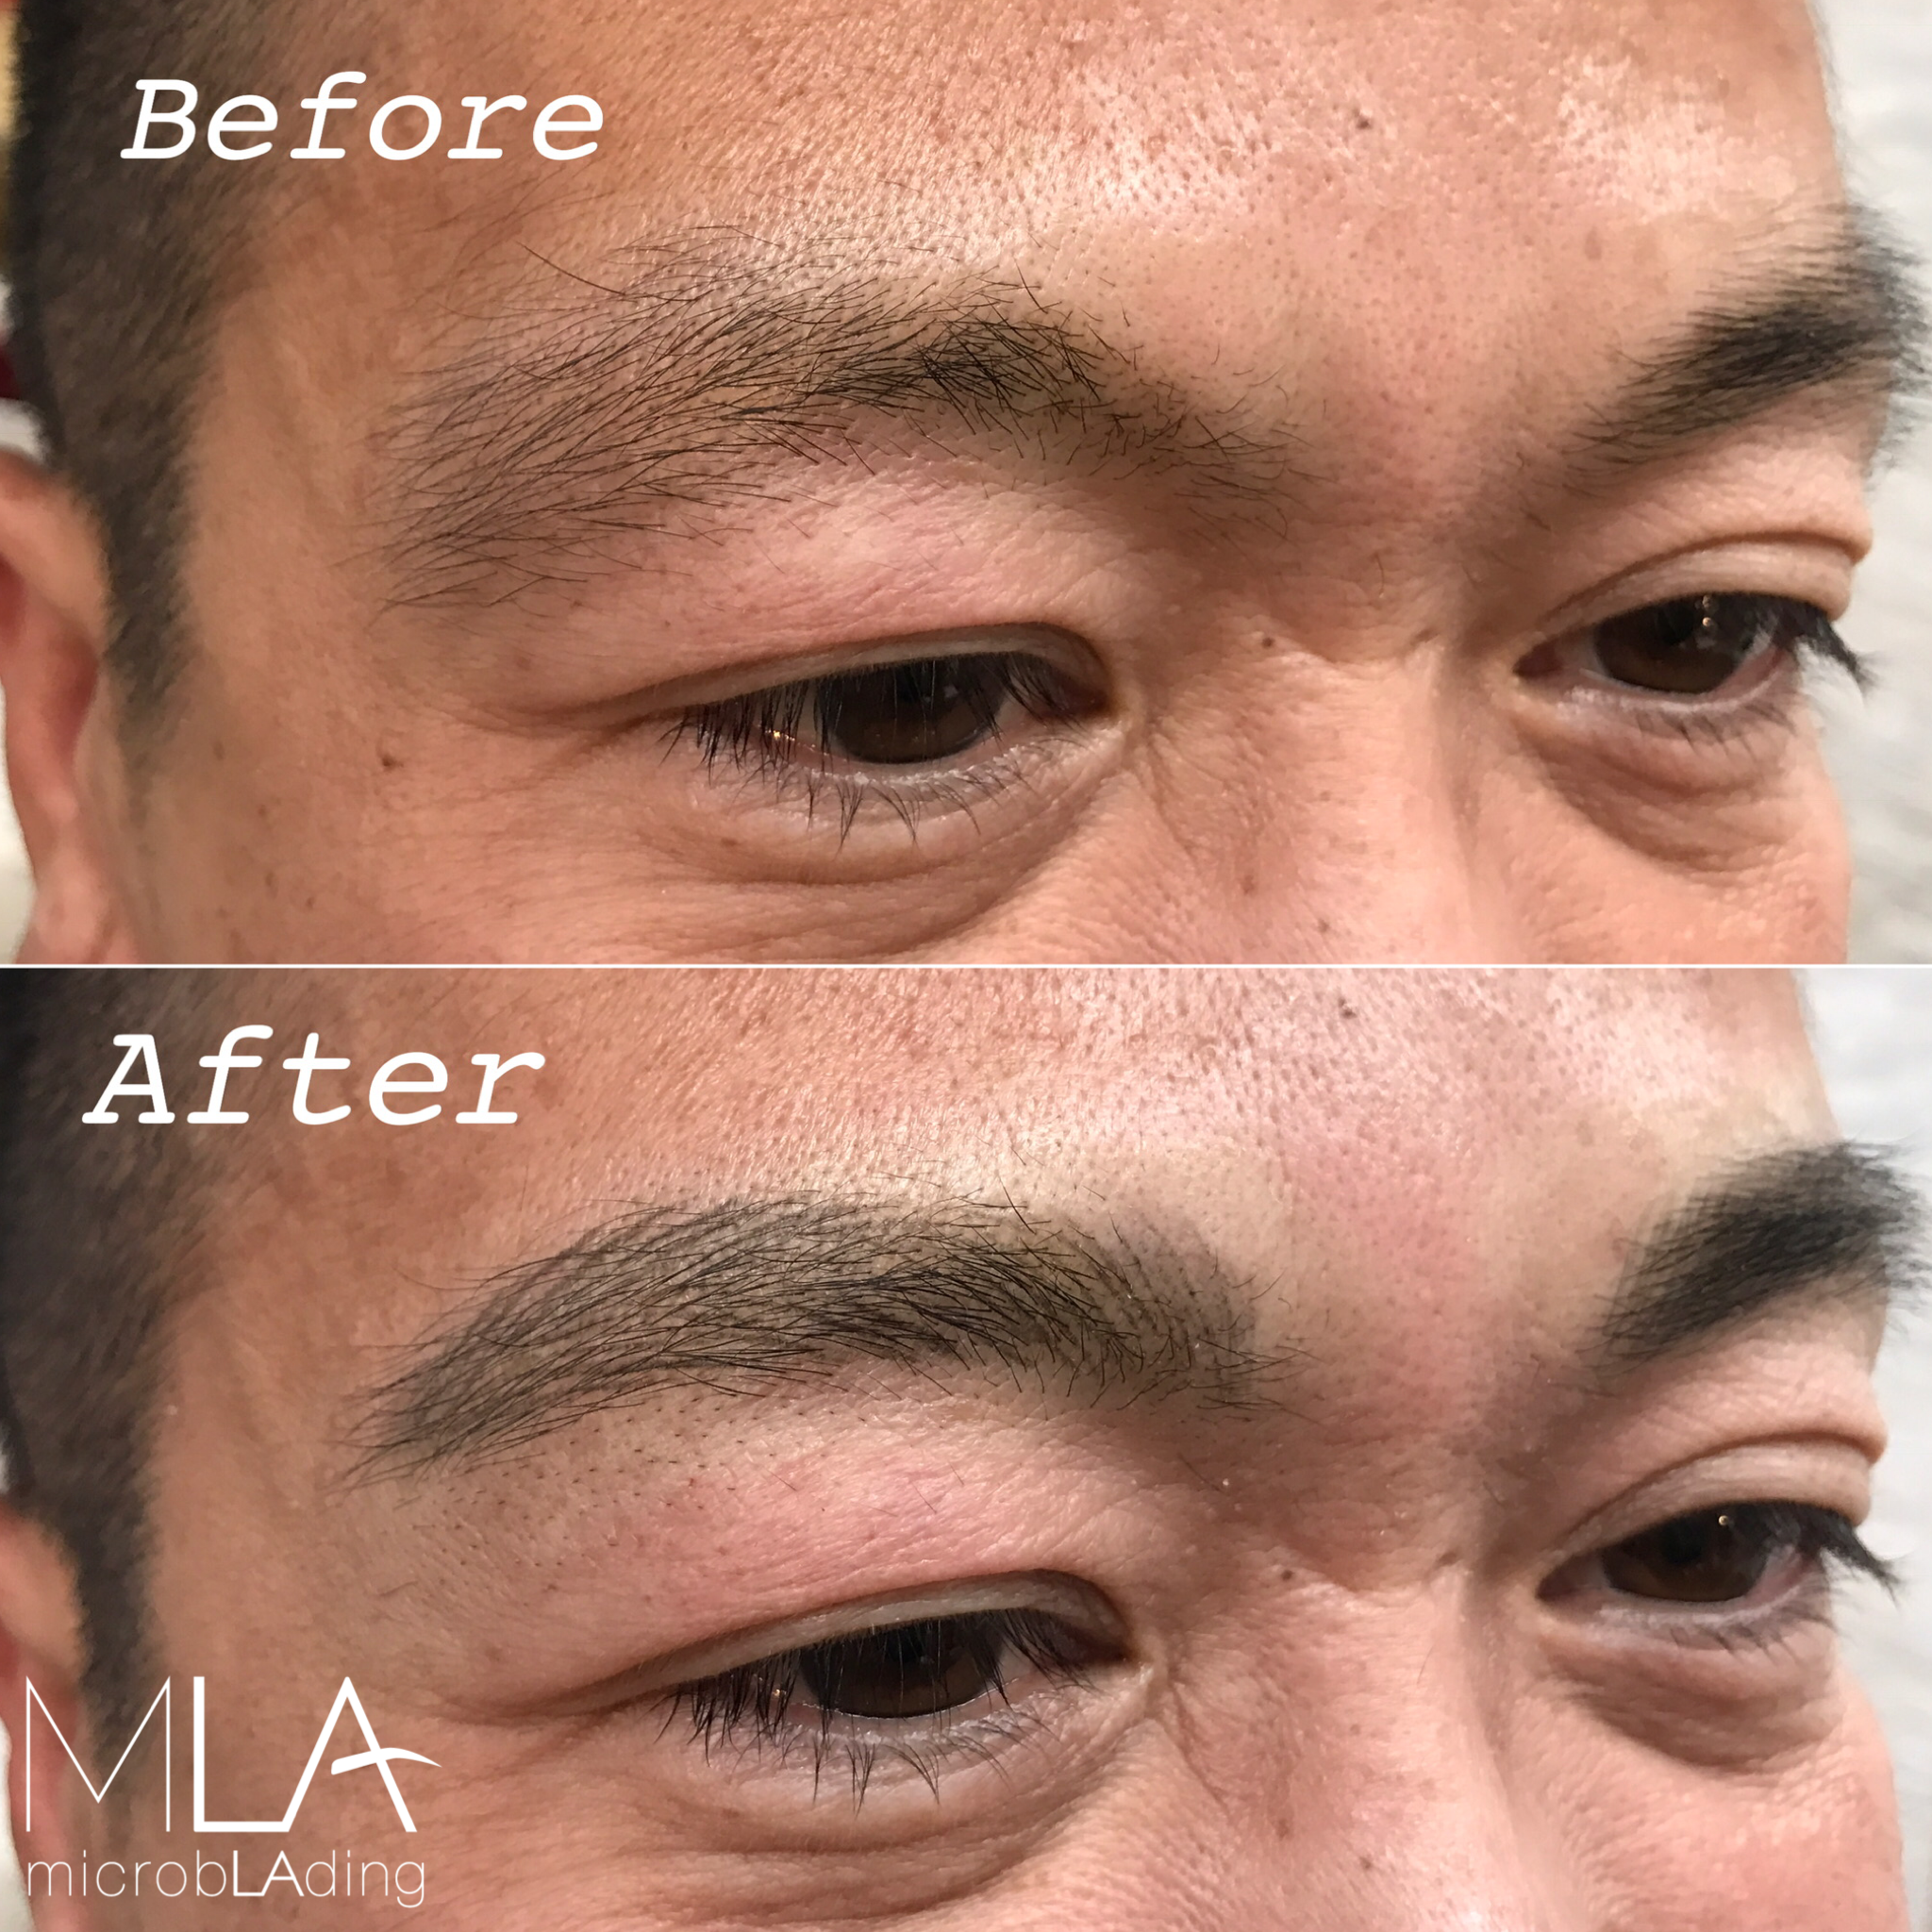 e7c6c172247 Check out these healed personalized brows done by Lindsey Ta! #microblading  #pmu